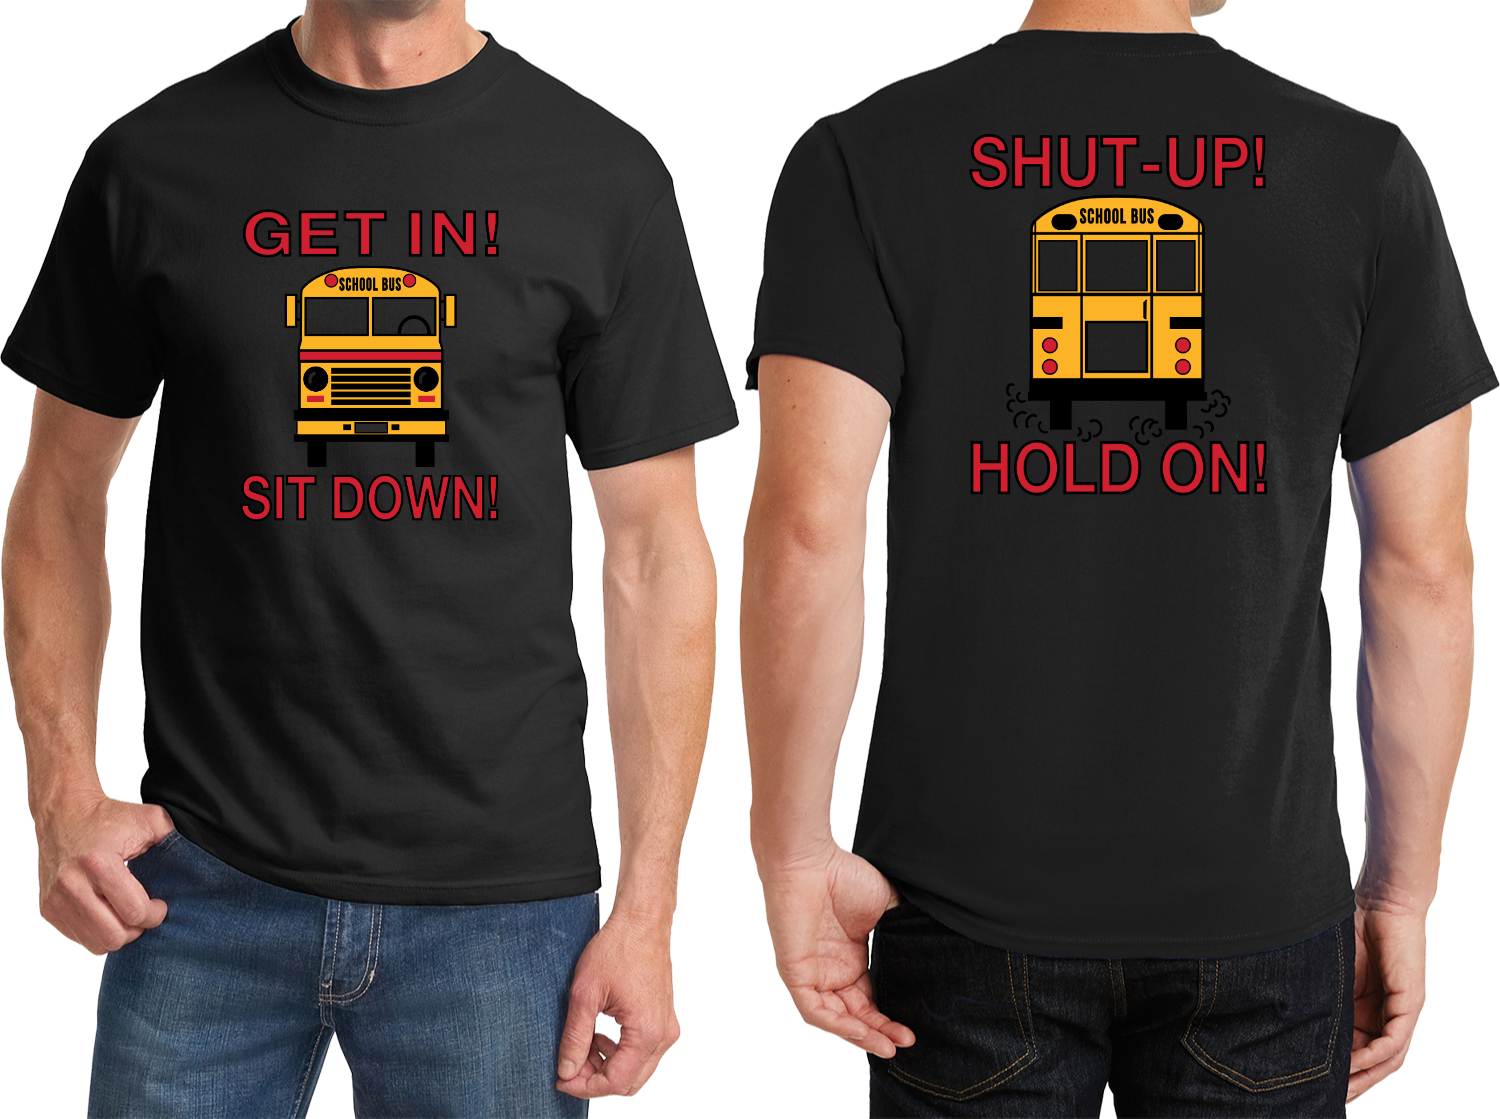 Cool Shirts School Bus Driver T-shirt In Sit